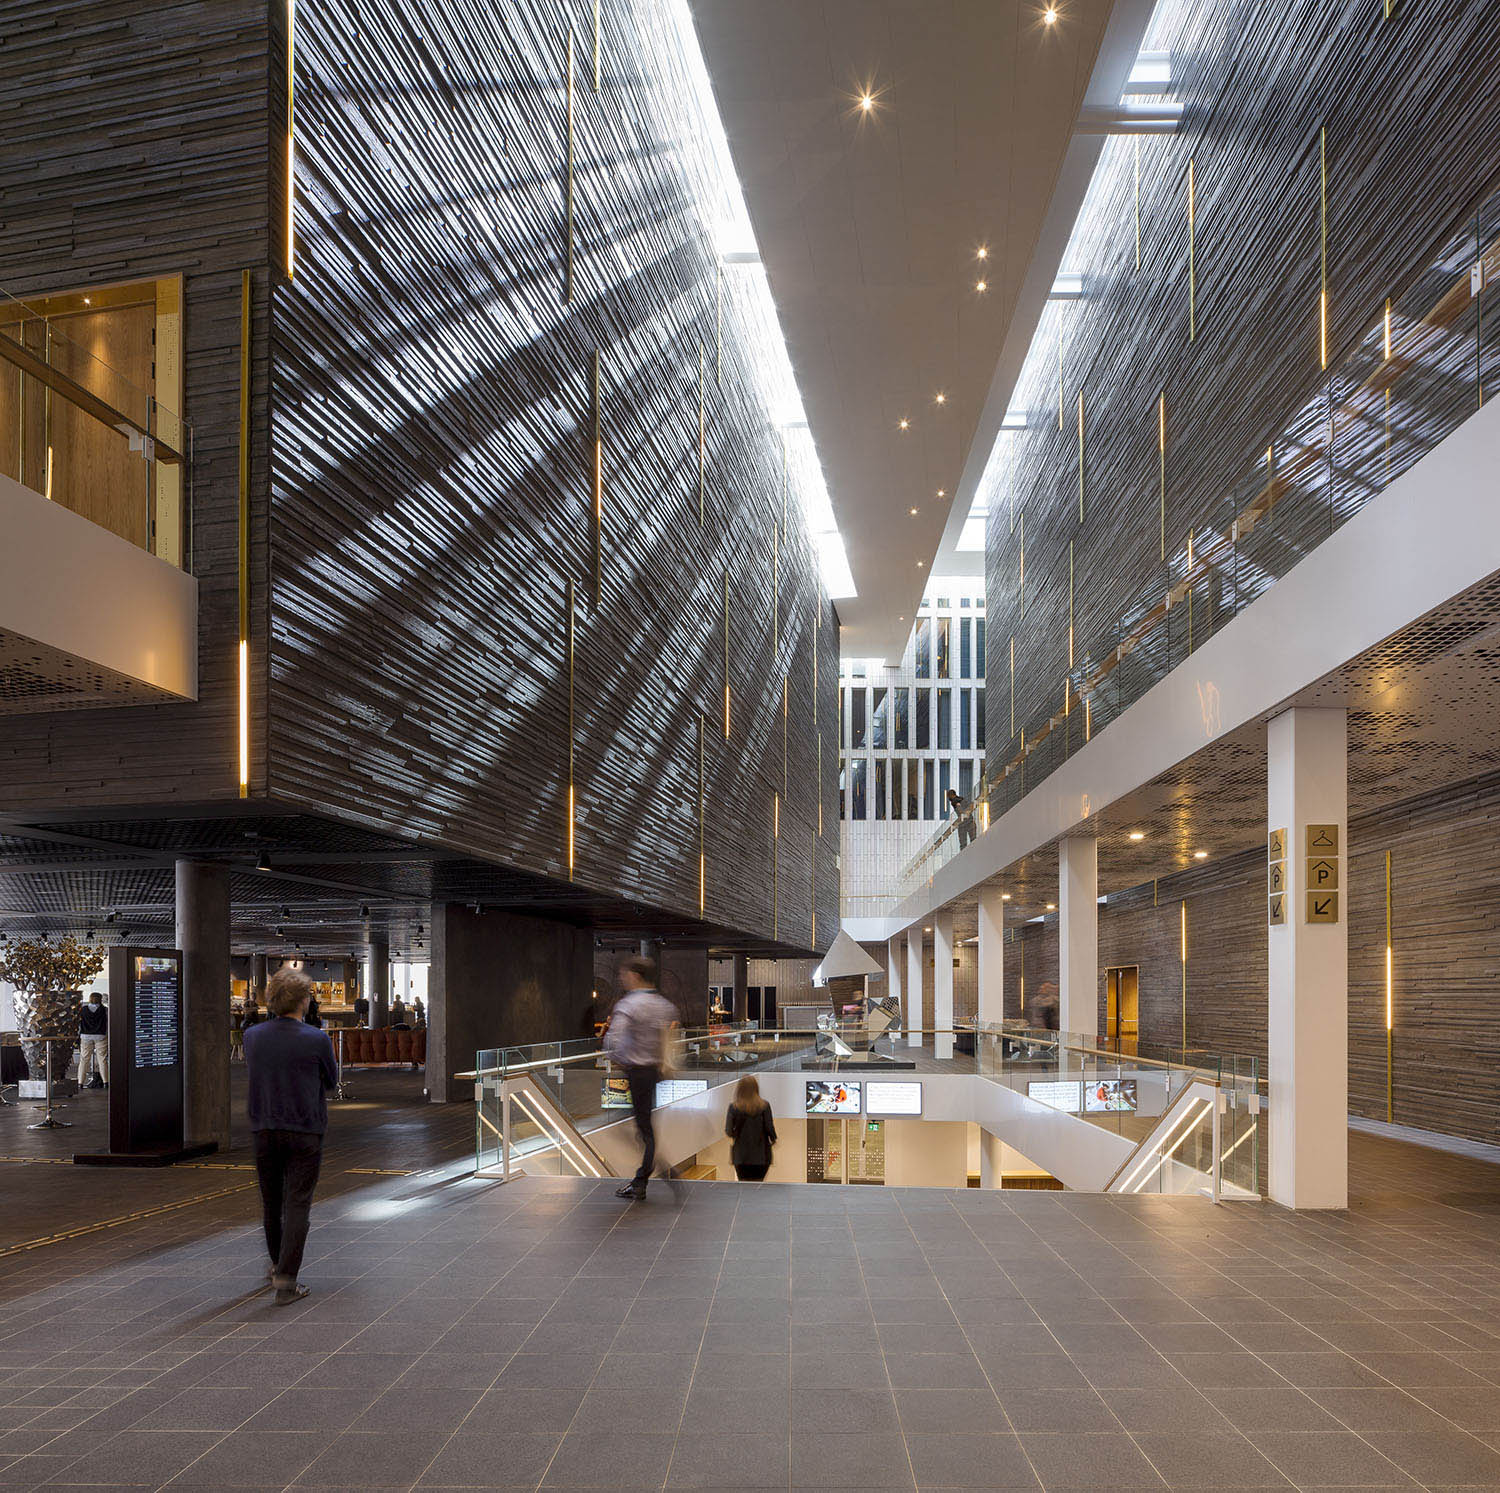 The different functions in the building are organised as separate elements - as a small town